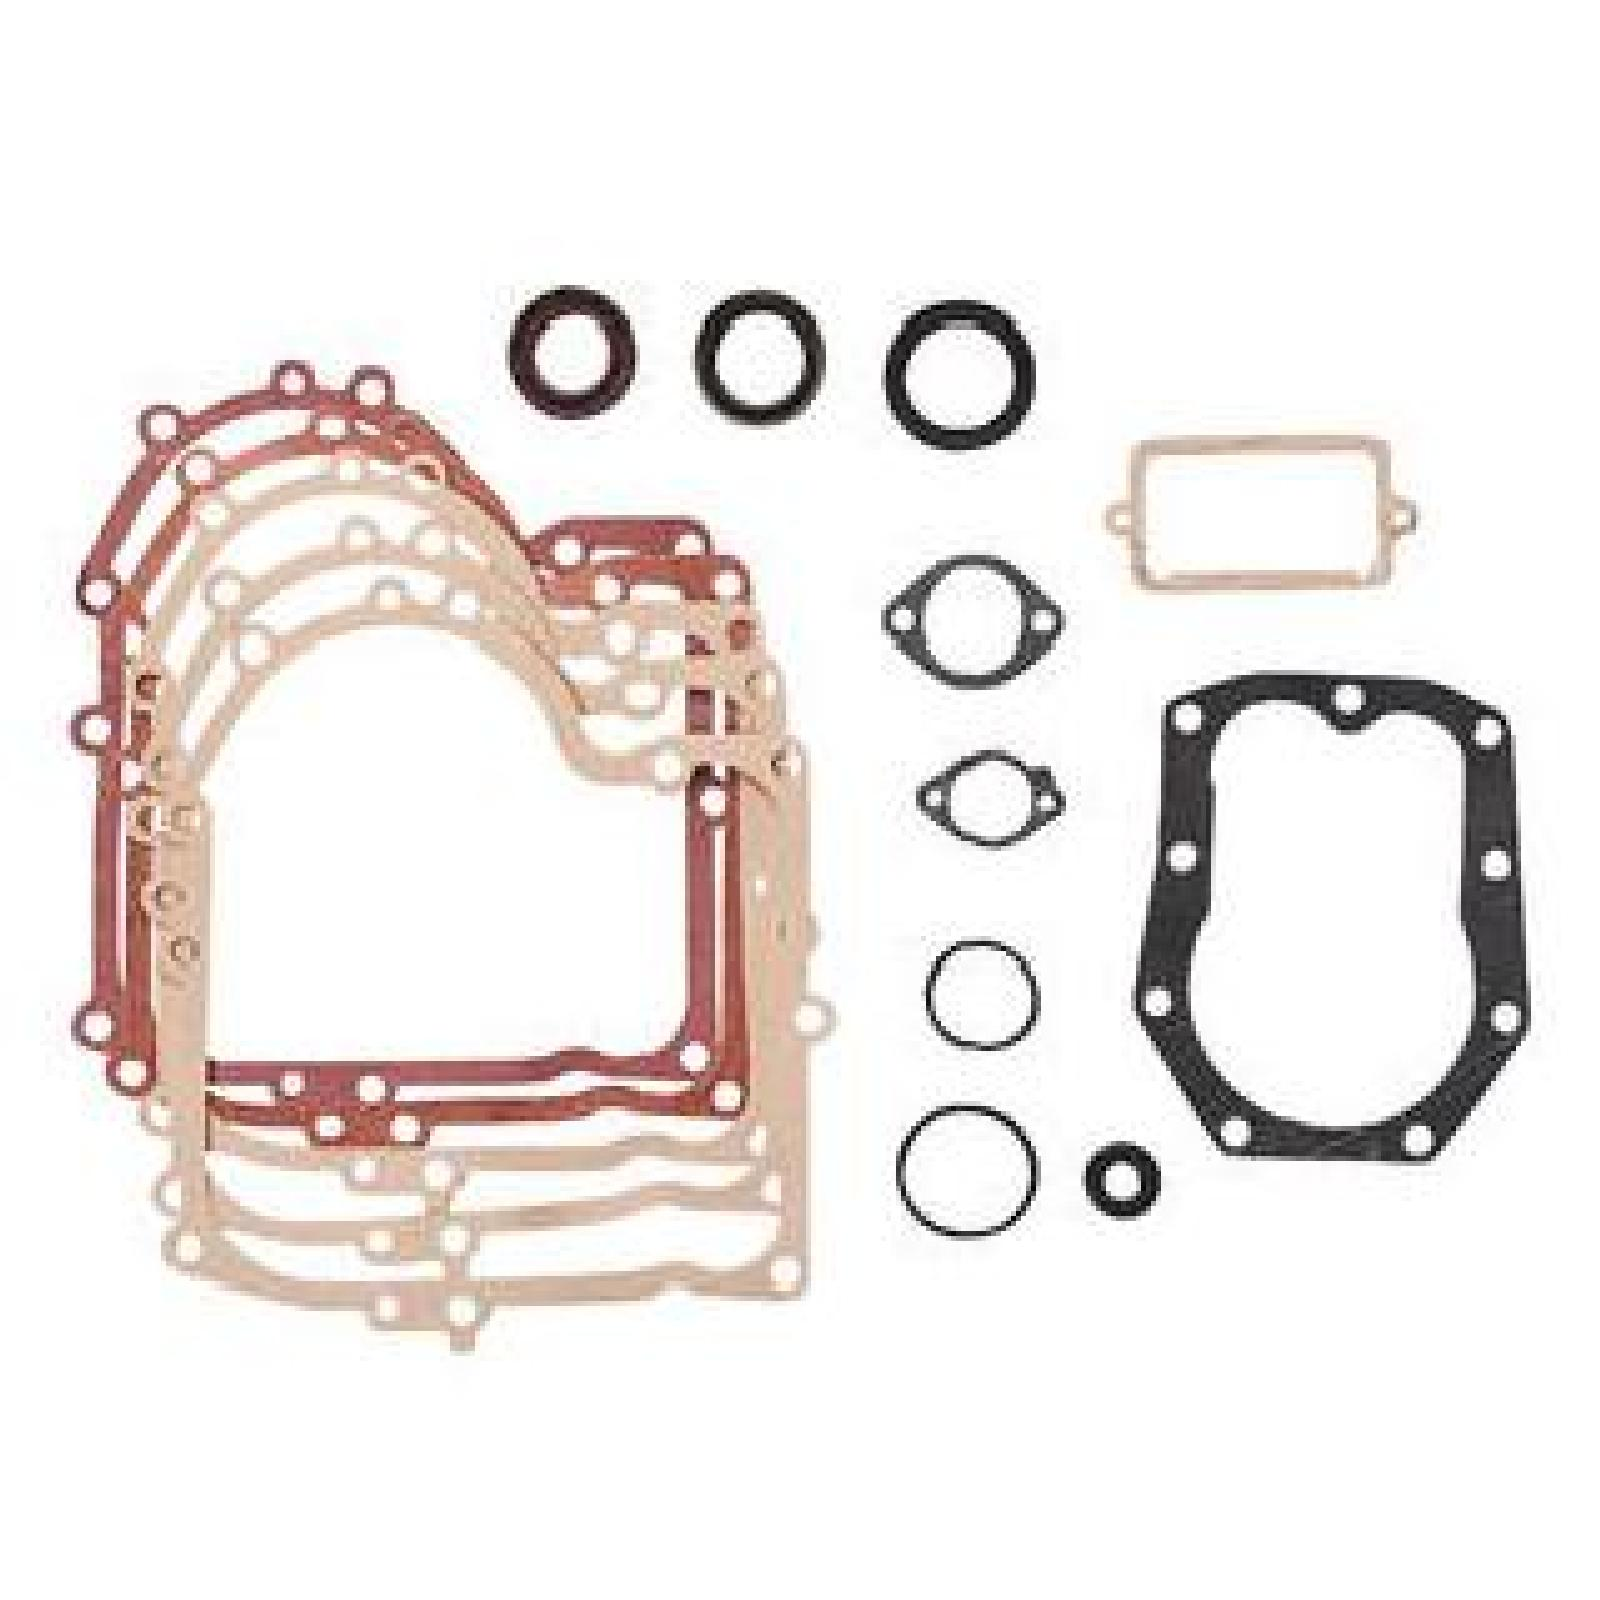 GASKET HONDA [689] part# 50-421 by Oregon